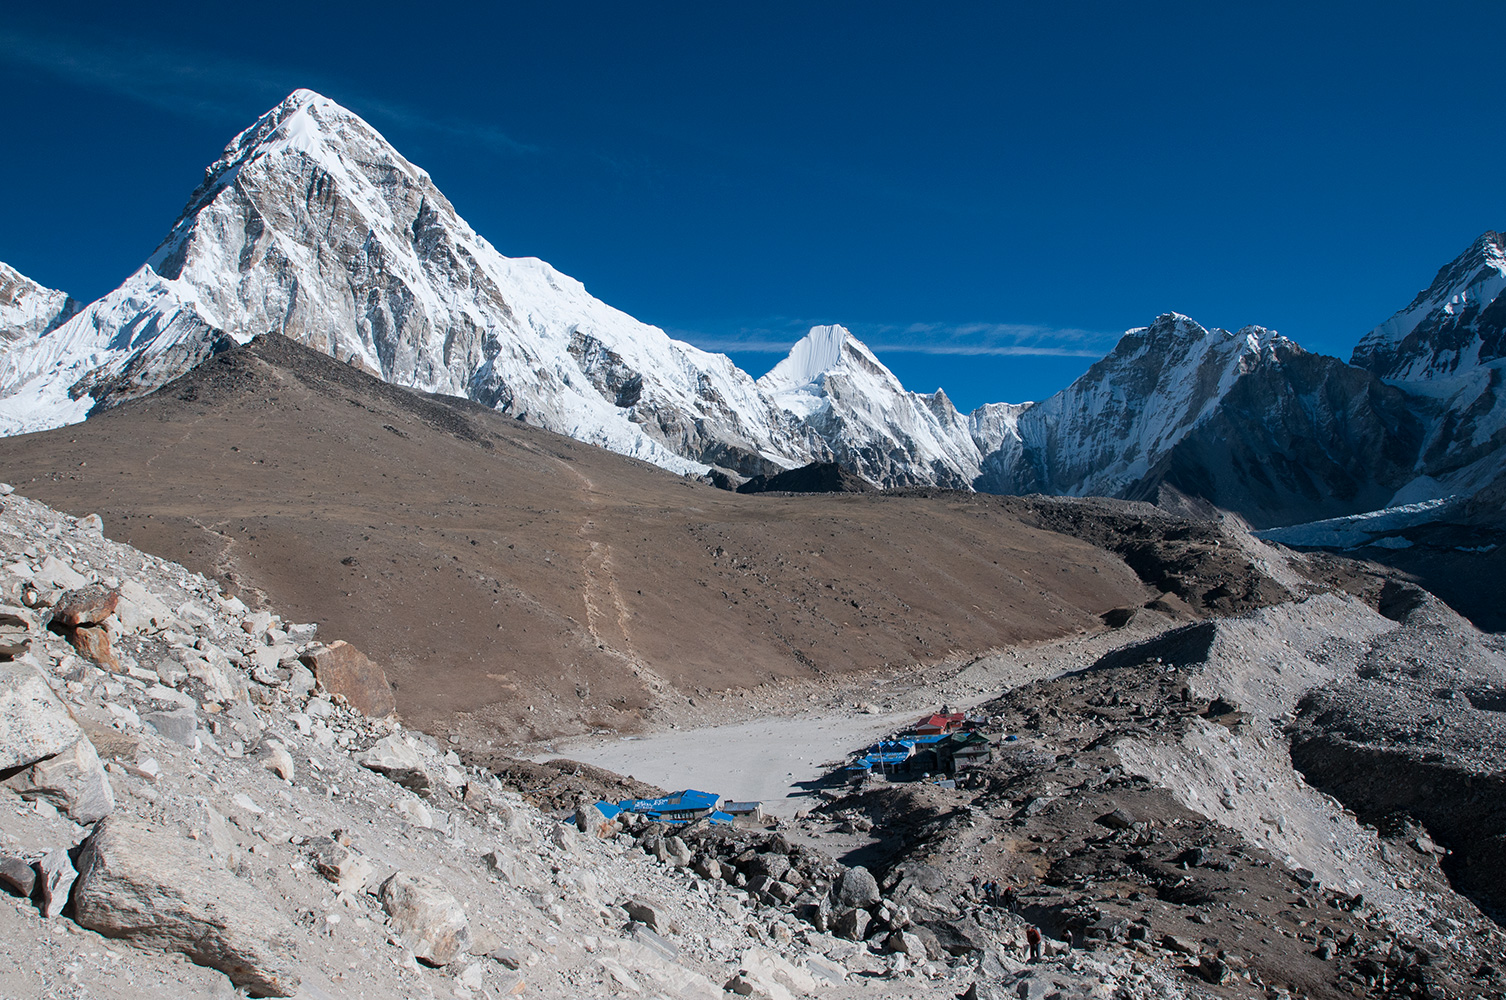 This collection of tea-houses and lodges is the highest place most trekkers to Everest spend the night. The trekkers' trails up to the Everest viewpoint on the summit of  Kala Pattar are clearly visibleNikon D300, 17-35mm